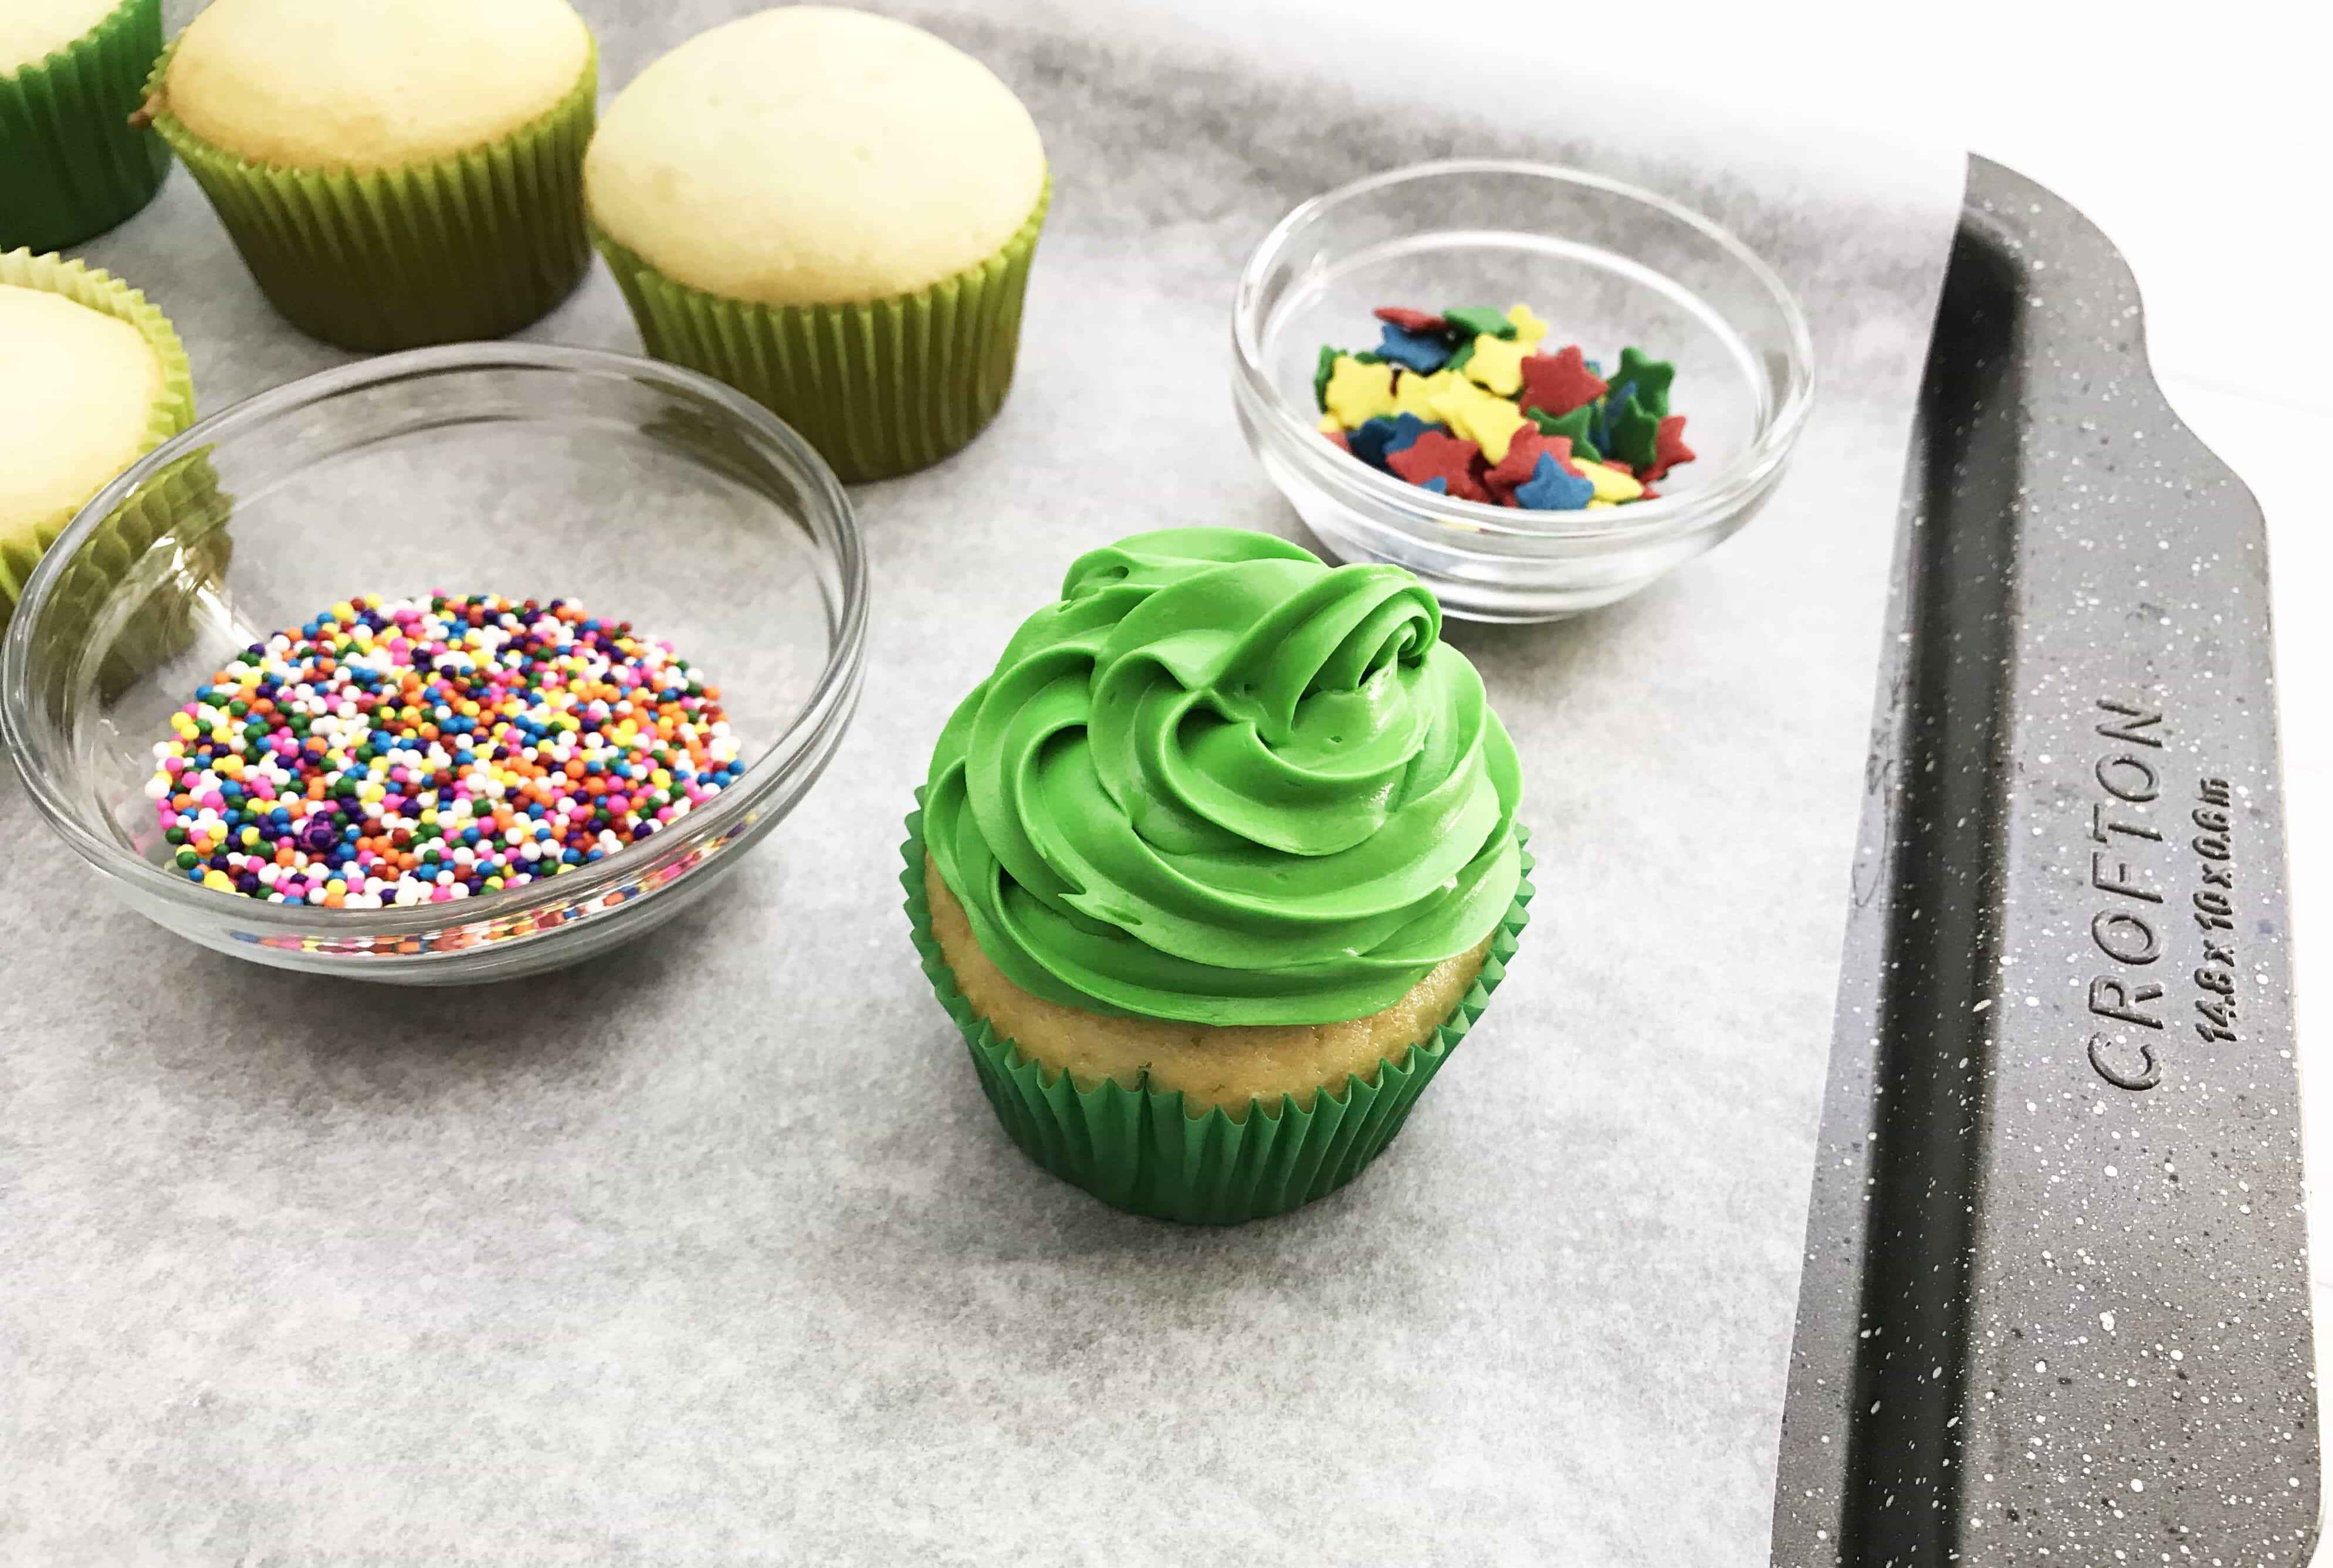 These Christmas Tree Cupcakes are so fun and festive! You can use store bought or your own homemade cupcake recipe for these delicious treats! They are perfect for holiday parties, bake sales and so much more. The pretty green color makes it super attractive to anyone!